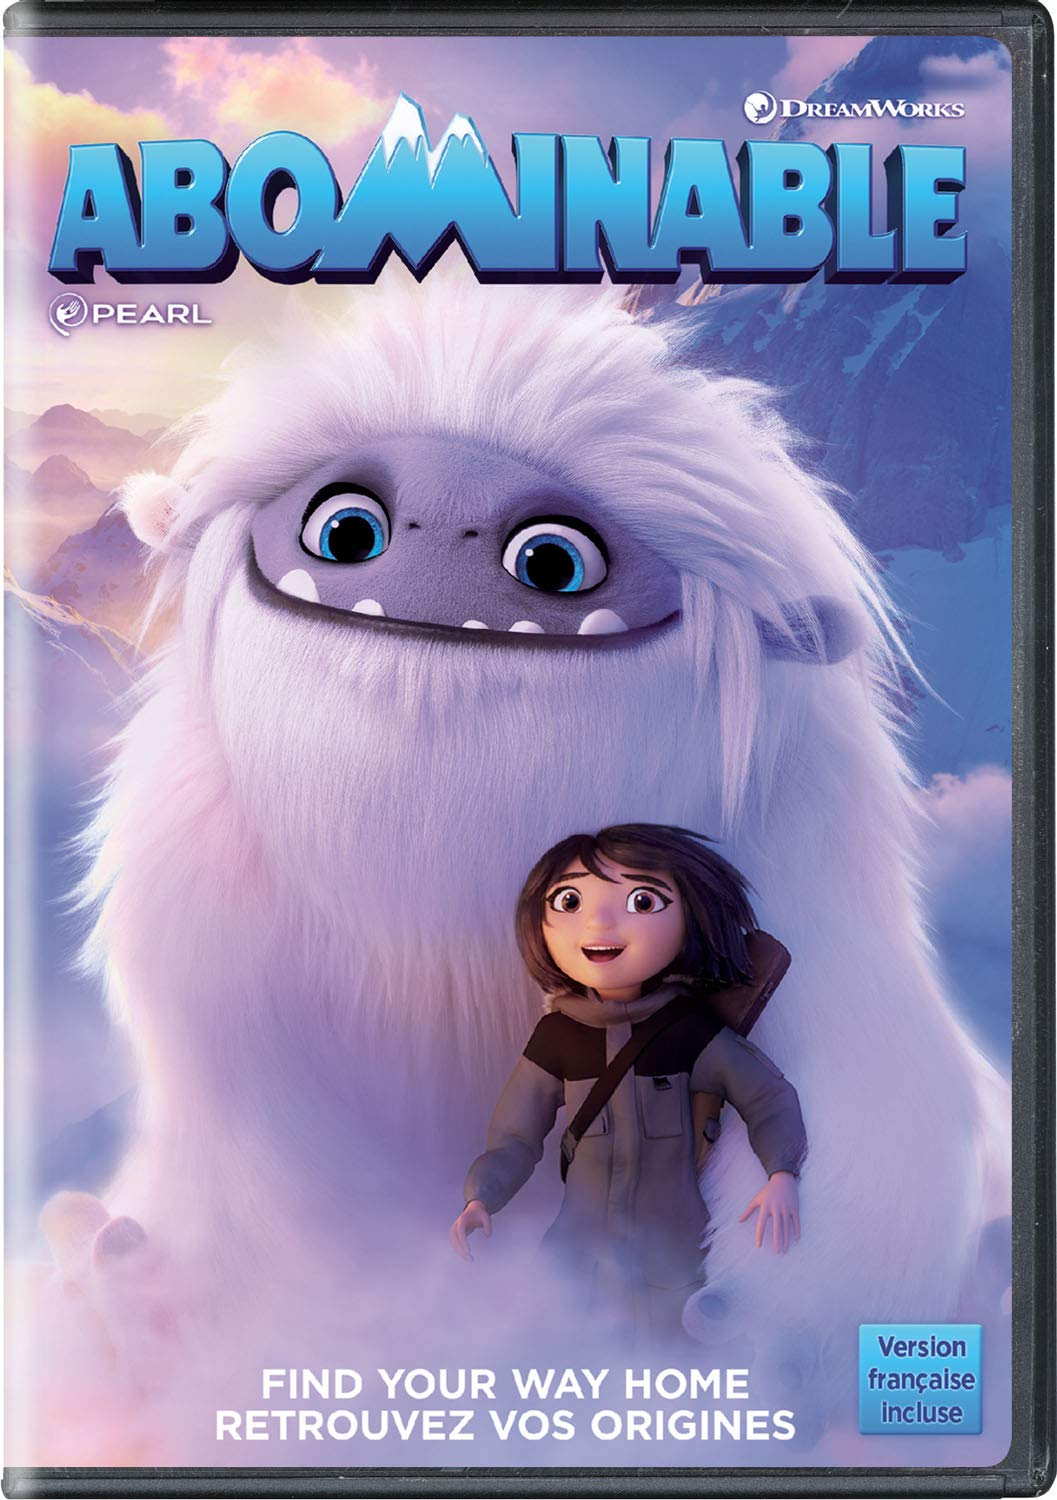 DVD: Abominable